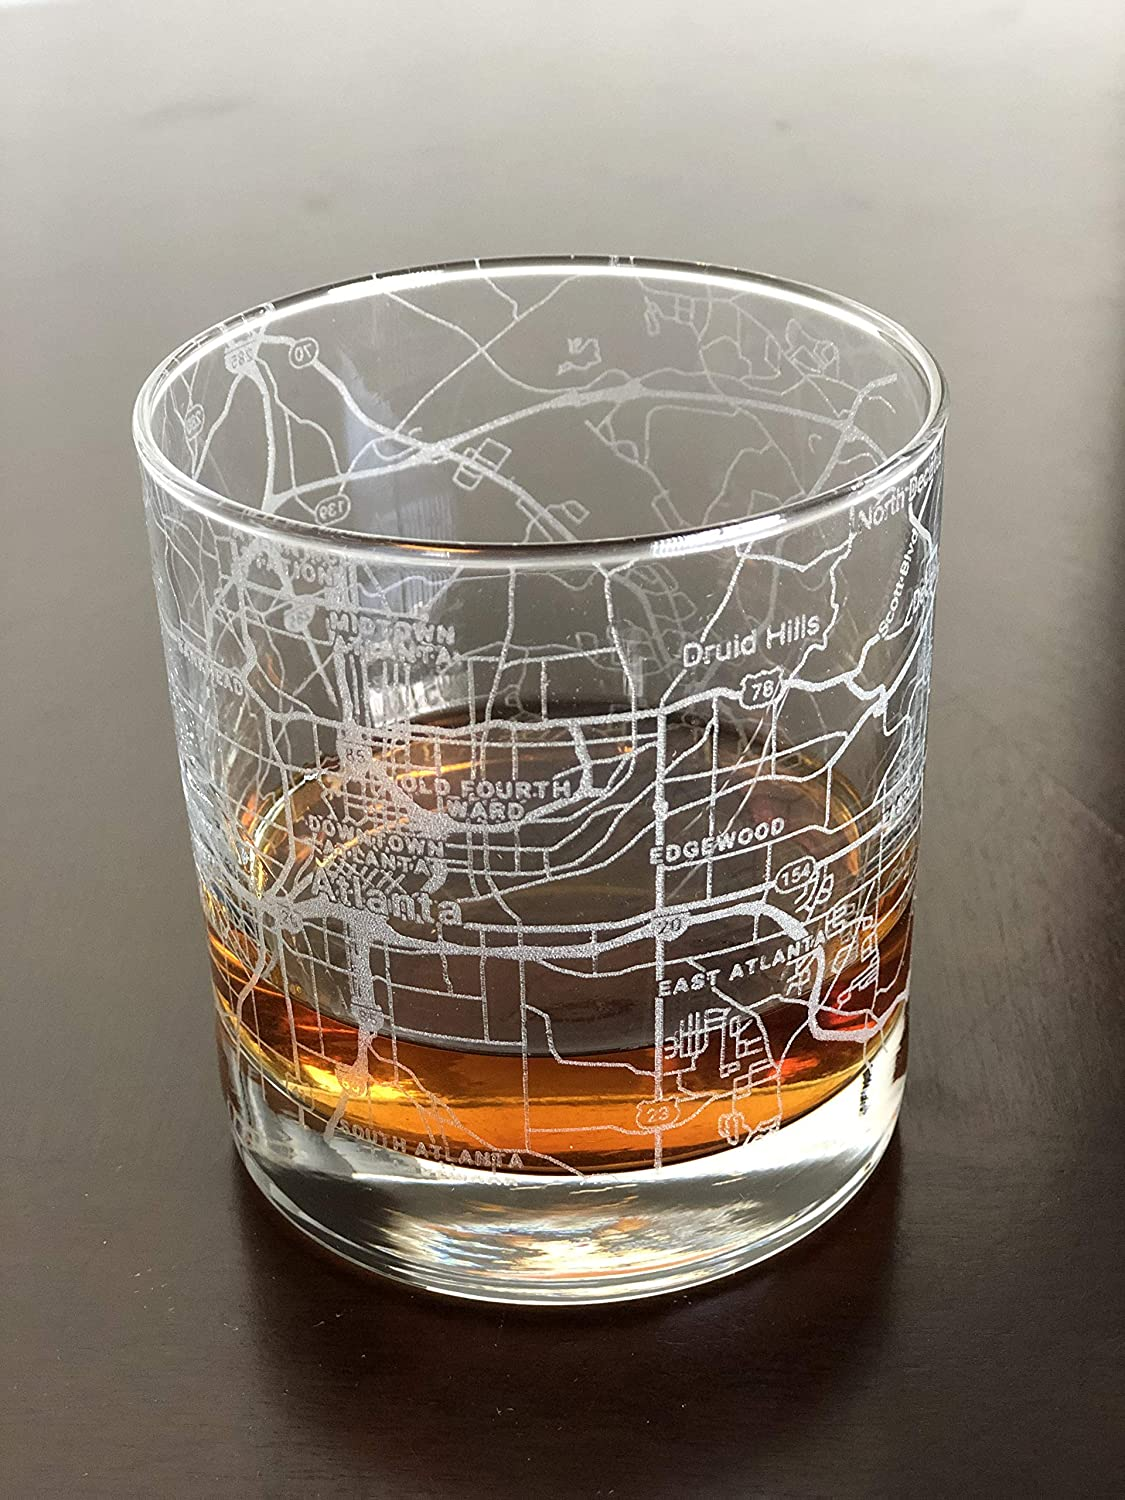 Rocks Whiskey Old Fashioned 11oz Glass Atlanta Map Urban Super 67% OFF of fixed price beauty product restock quality top Ge City